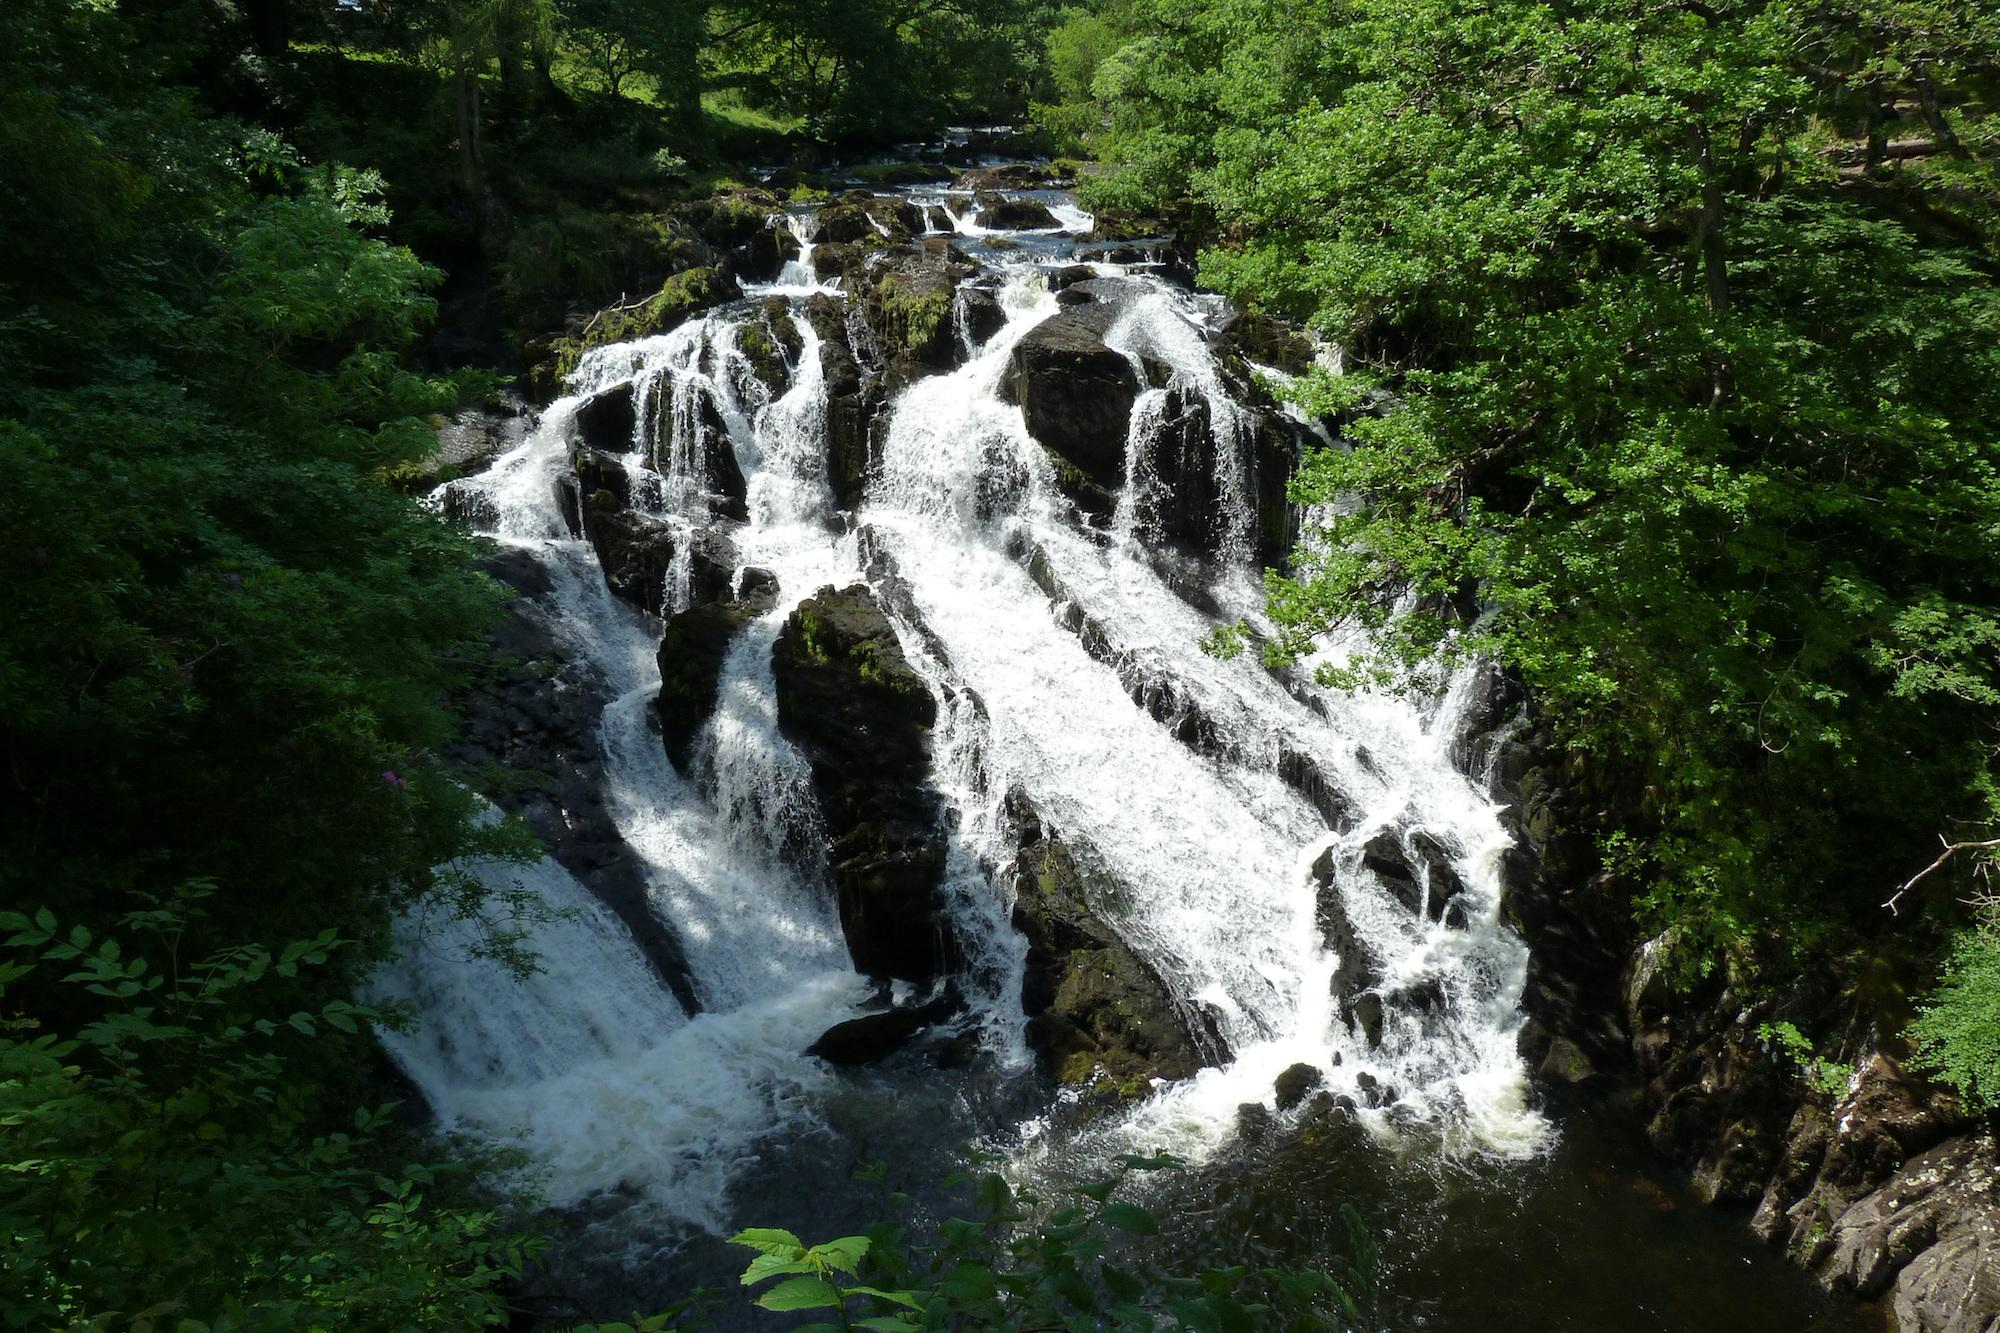 Betws y Coed Camping | Campsites in Betws y Coed, North Wales